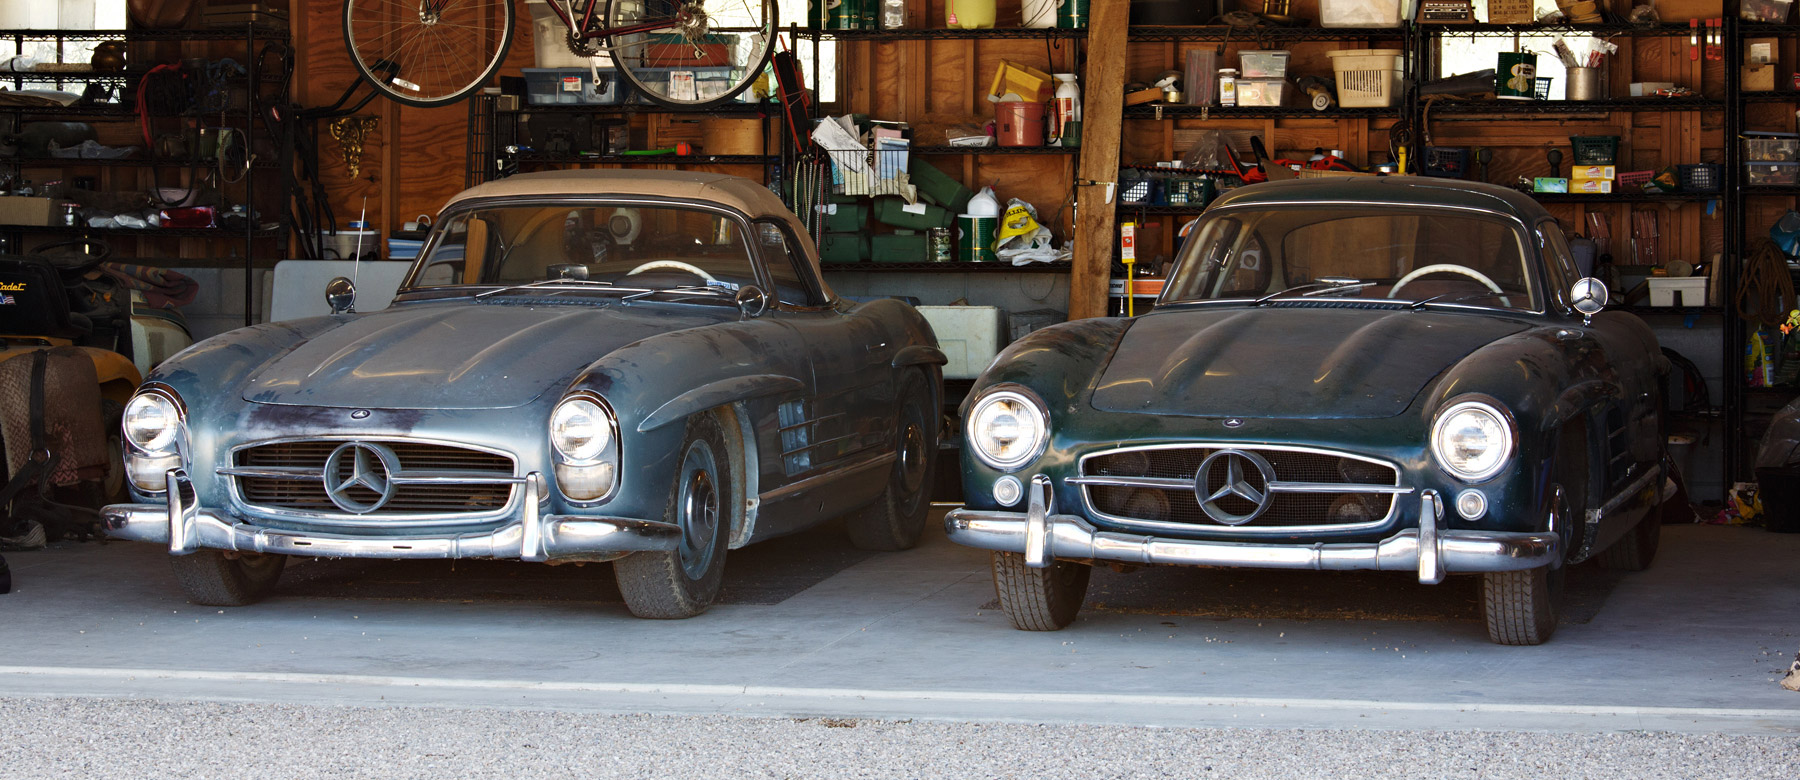 Will This Pair Of Mercedes Benz 300sls Set A Sale Record Bloomberg